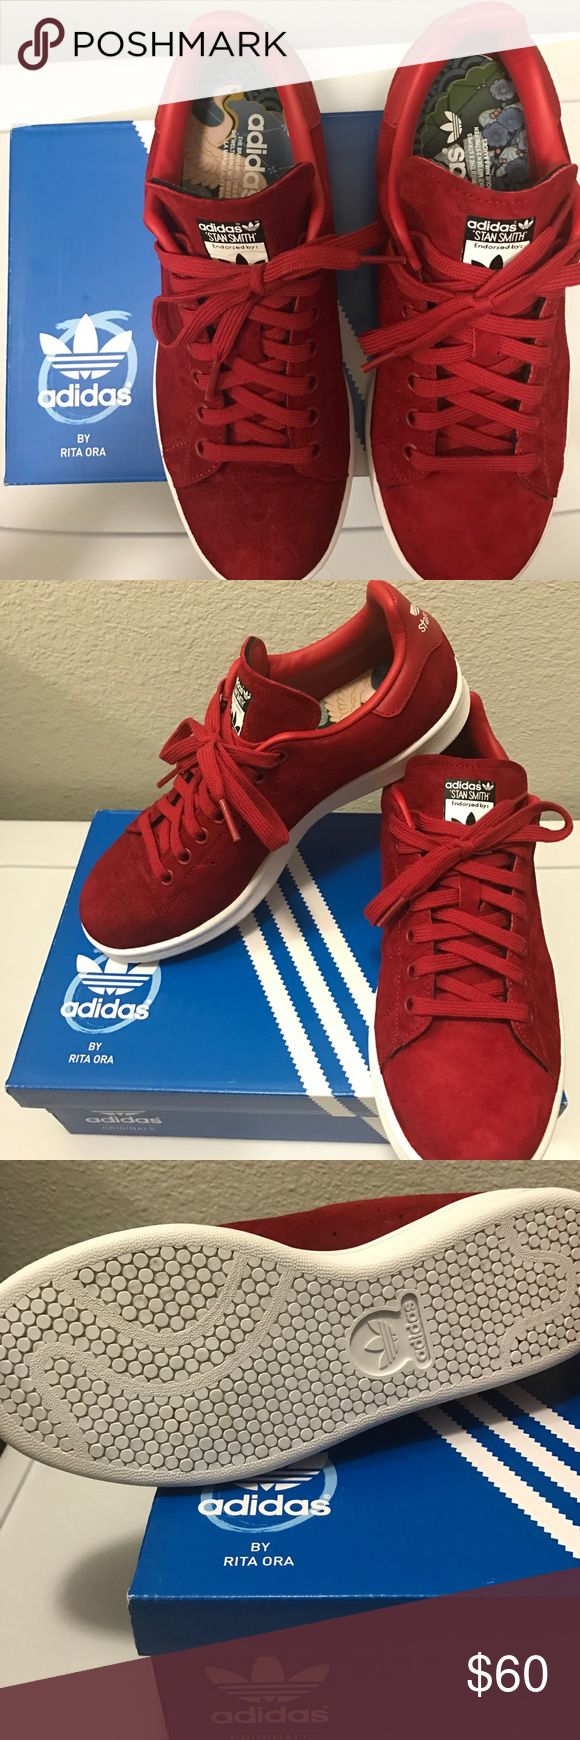 """Adidas by Rita Ora """"Geisha"""" Stan Smith Pre-owned ADIDAS ORIGINAL RITA ORA """"GEISHA"""" STAN SMITH.   Looks brand new comes in box.  Color: Red  Size: 7.5W Adidas Shoes Sneakers"""